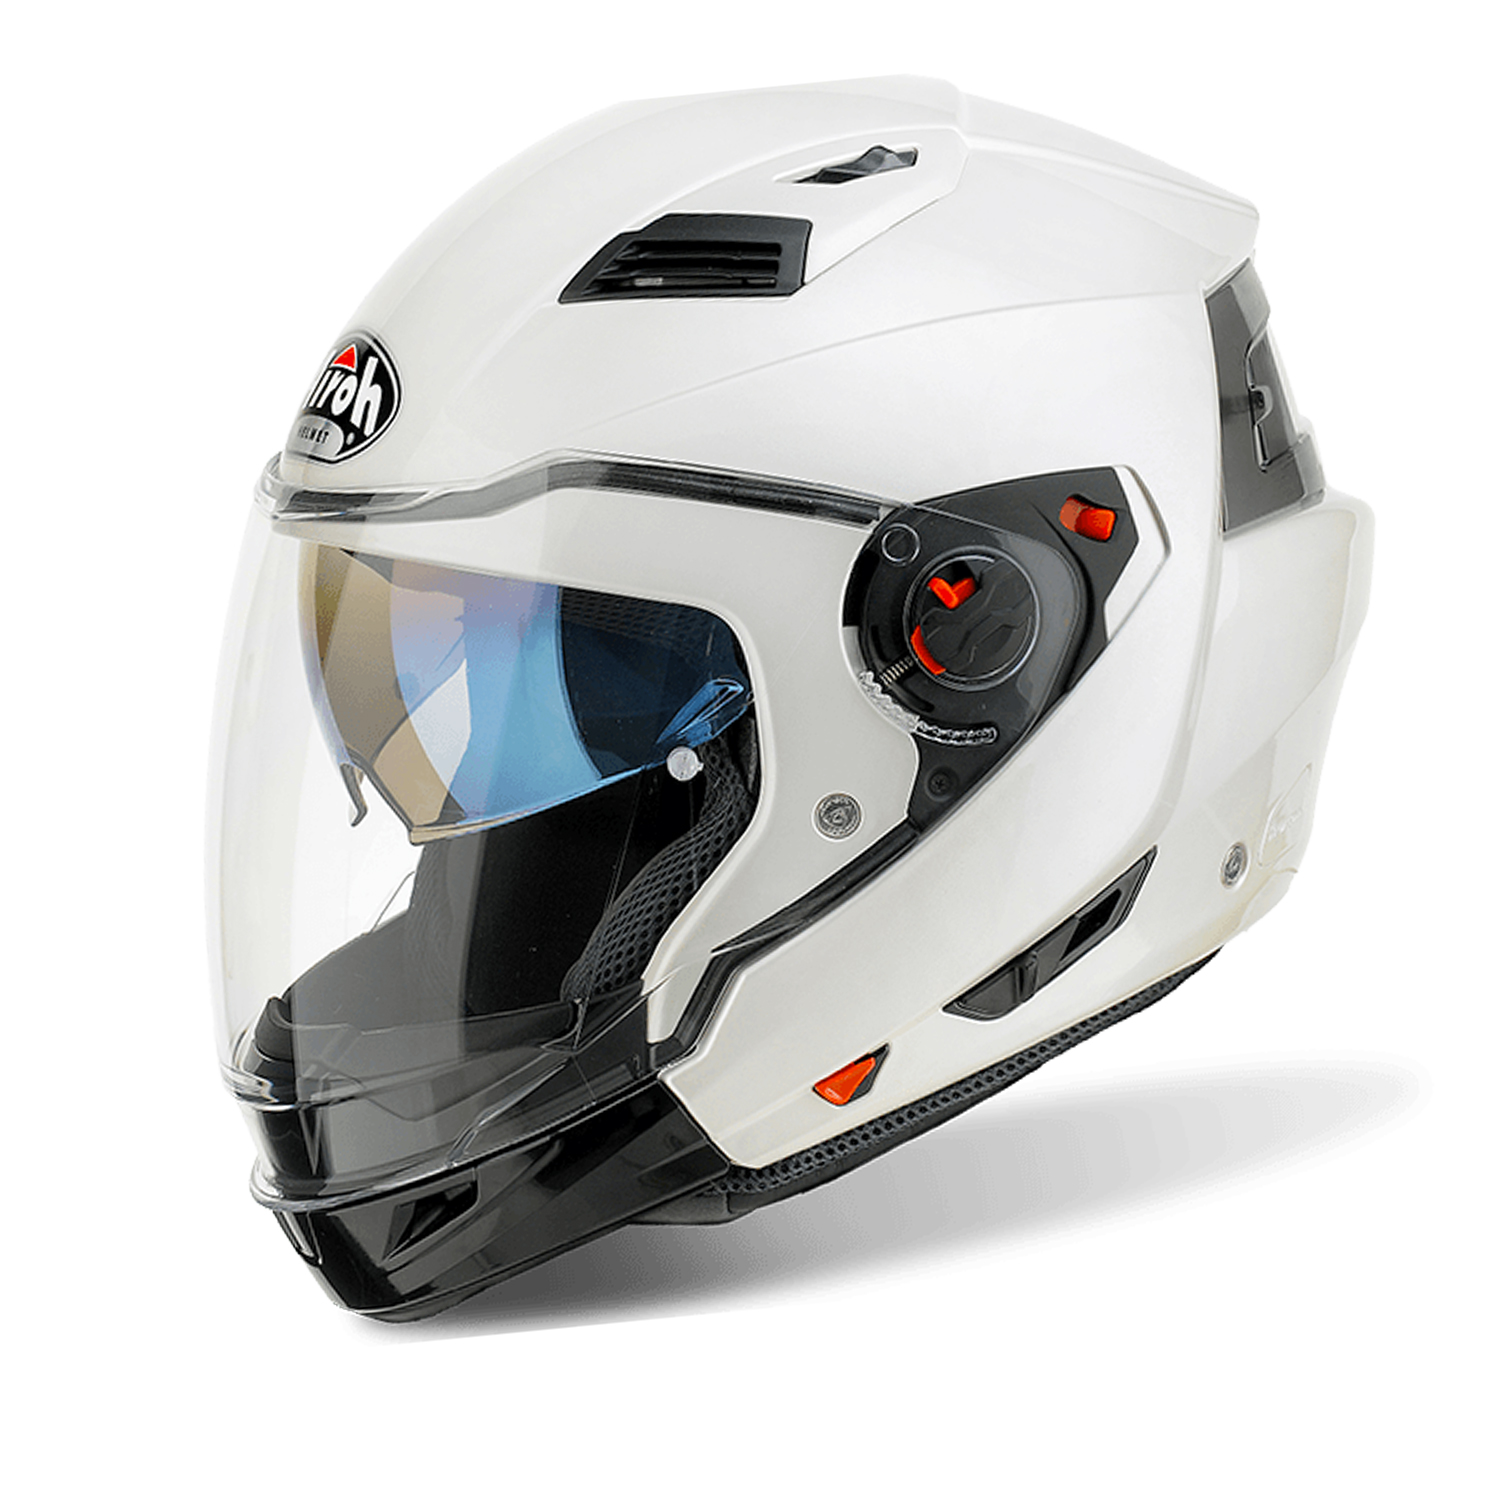 Casco helmet Airoh Flip Up Apribile Modulare Executive Color White Gloss moto